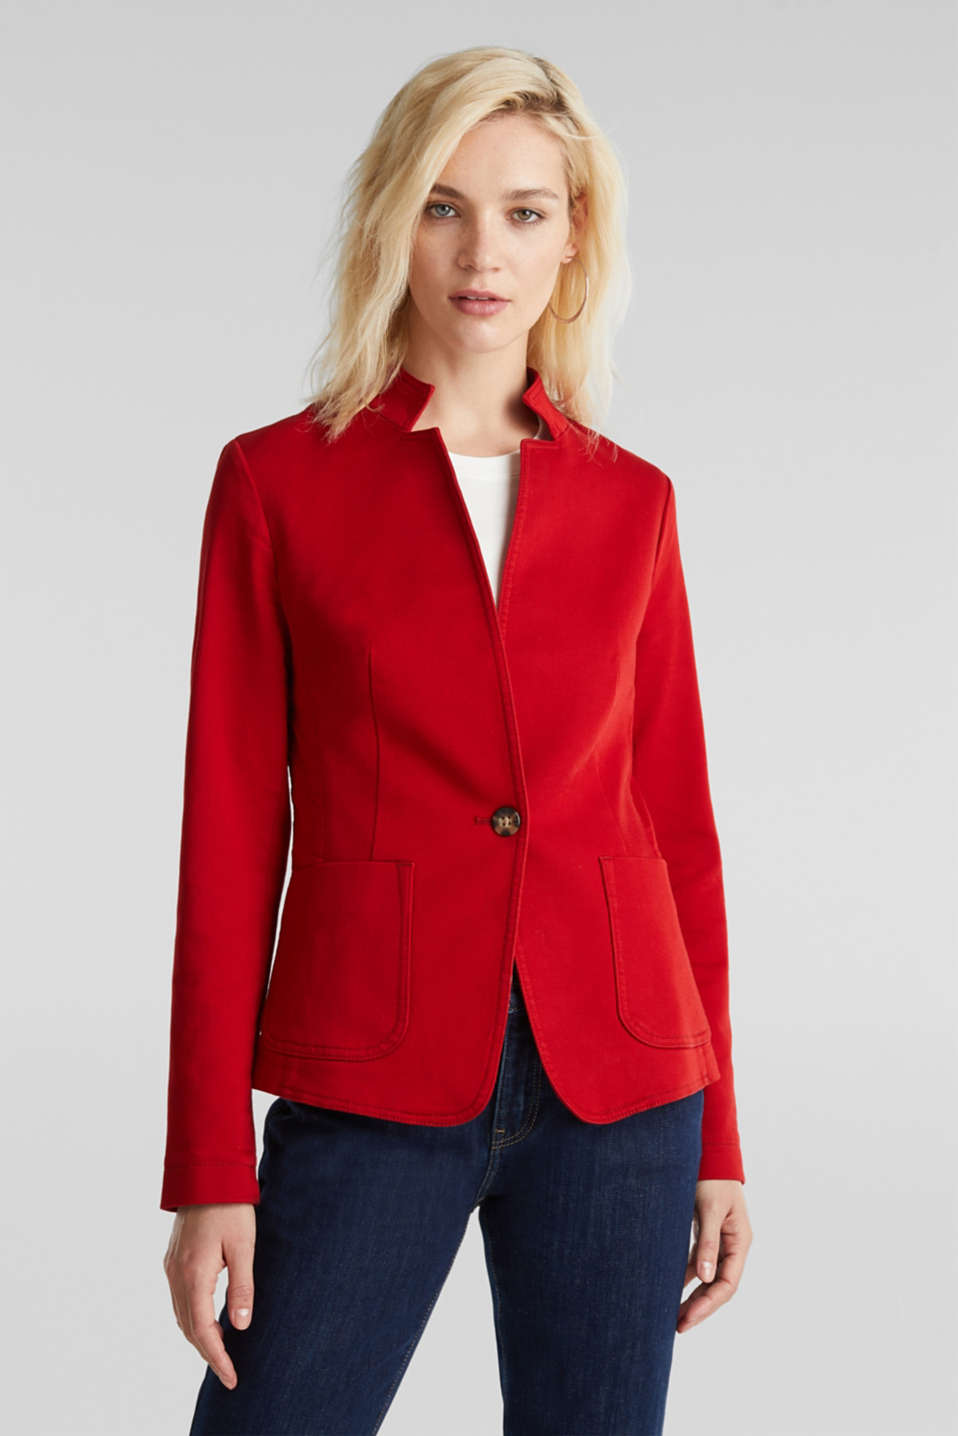 Esprit - Blazer with an adjustable collar, stretch cotton